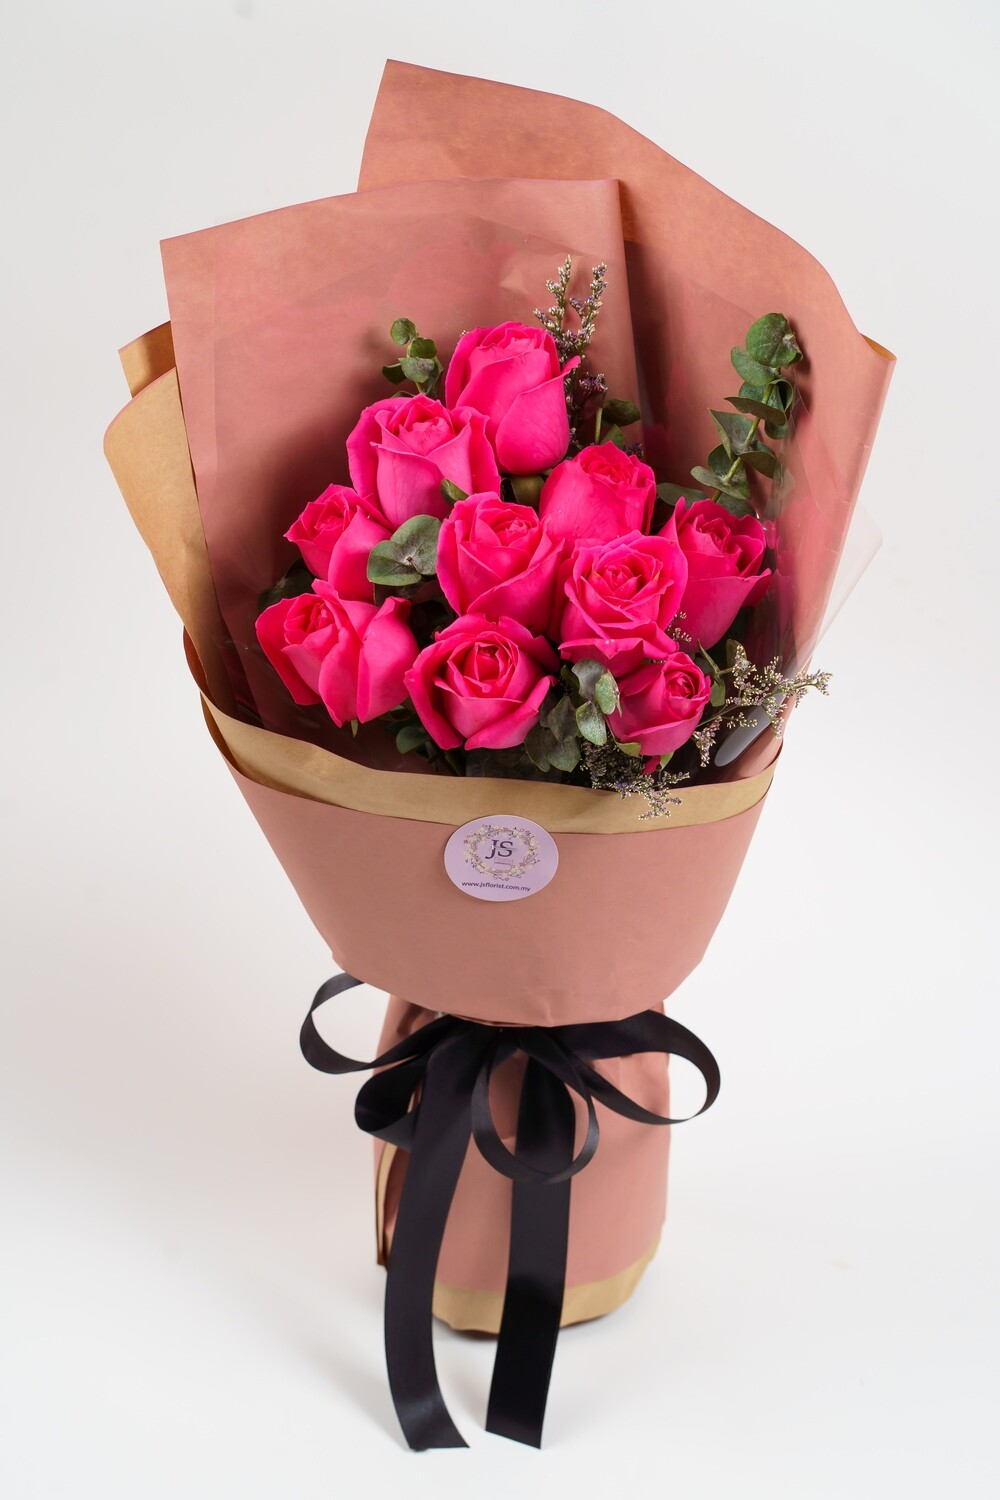 BQ1066 Fall for You (By: JS Florist from Damansara)